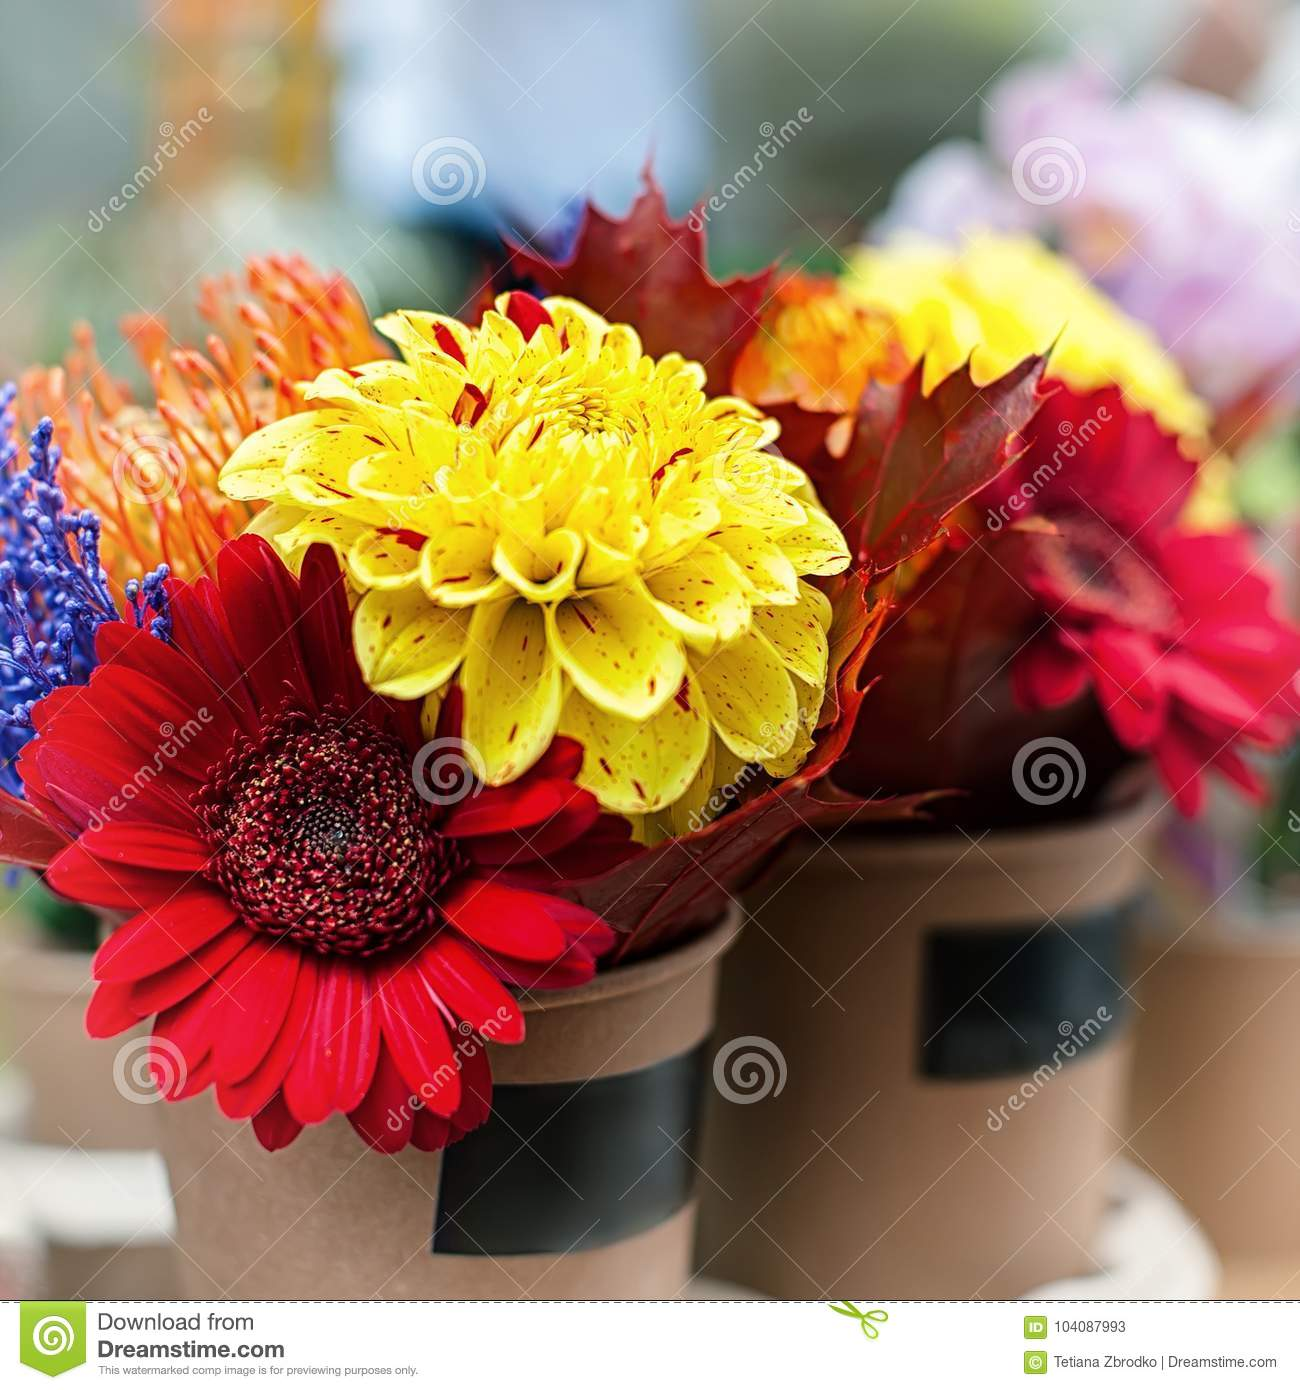 Colorful autumn flowers stock image. Image of design - 104087993